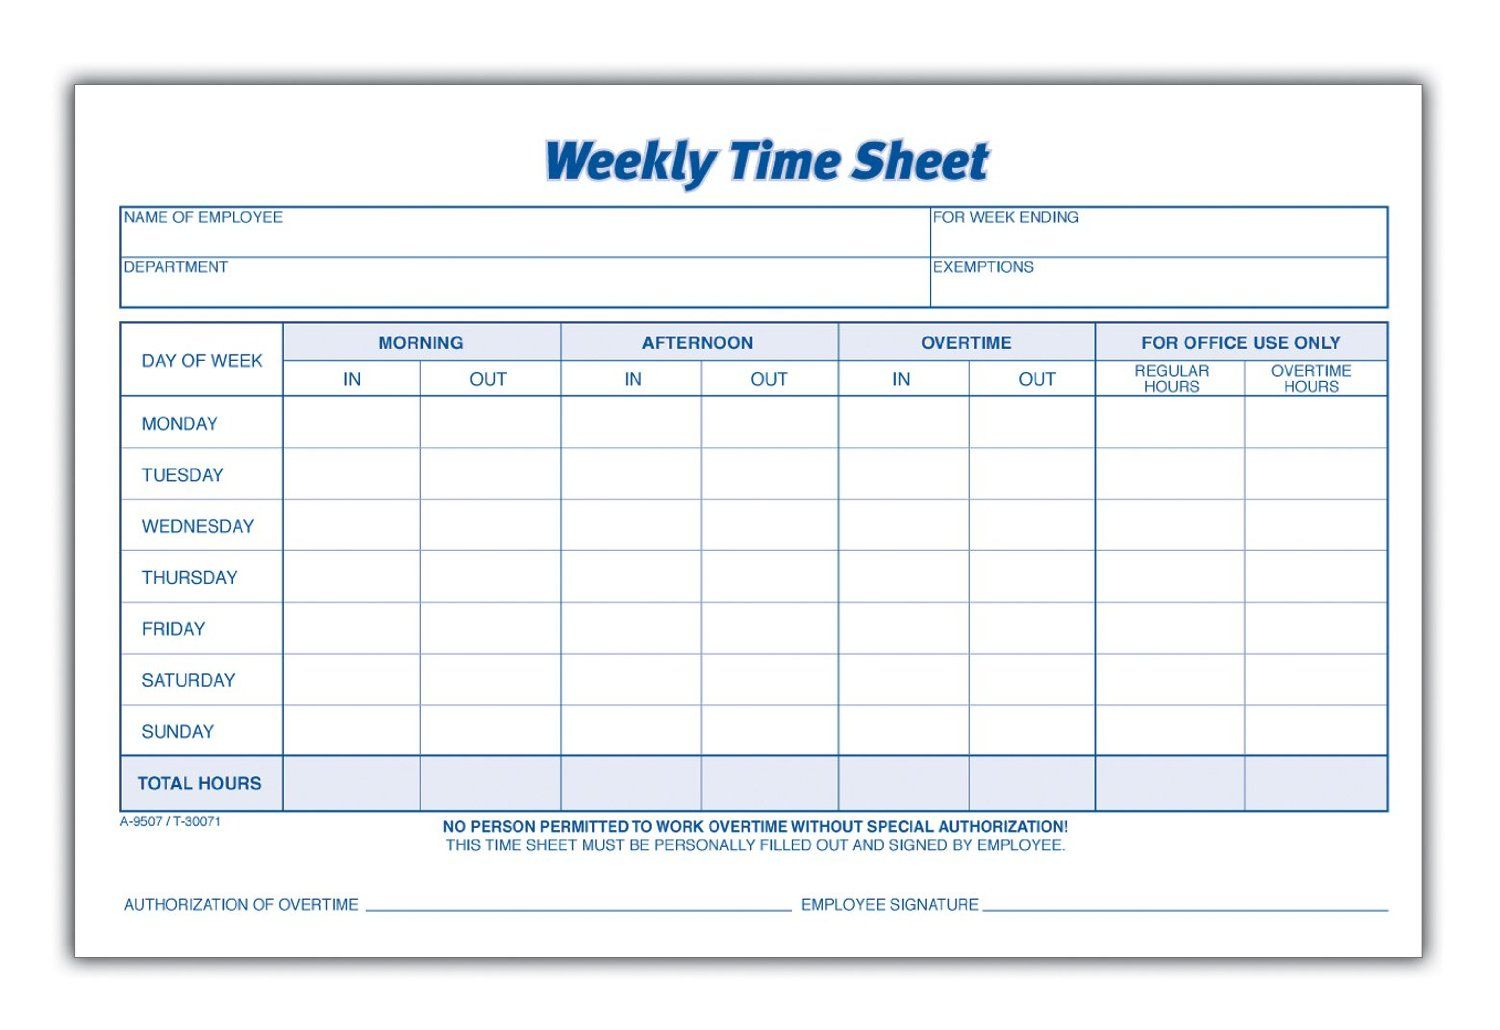 Weekly Employee Time Sheet | Good To Know | Timesheet Intended For Weekly Time Card Template Free